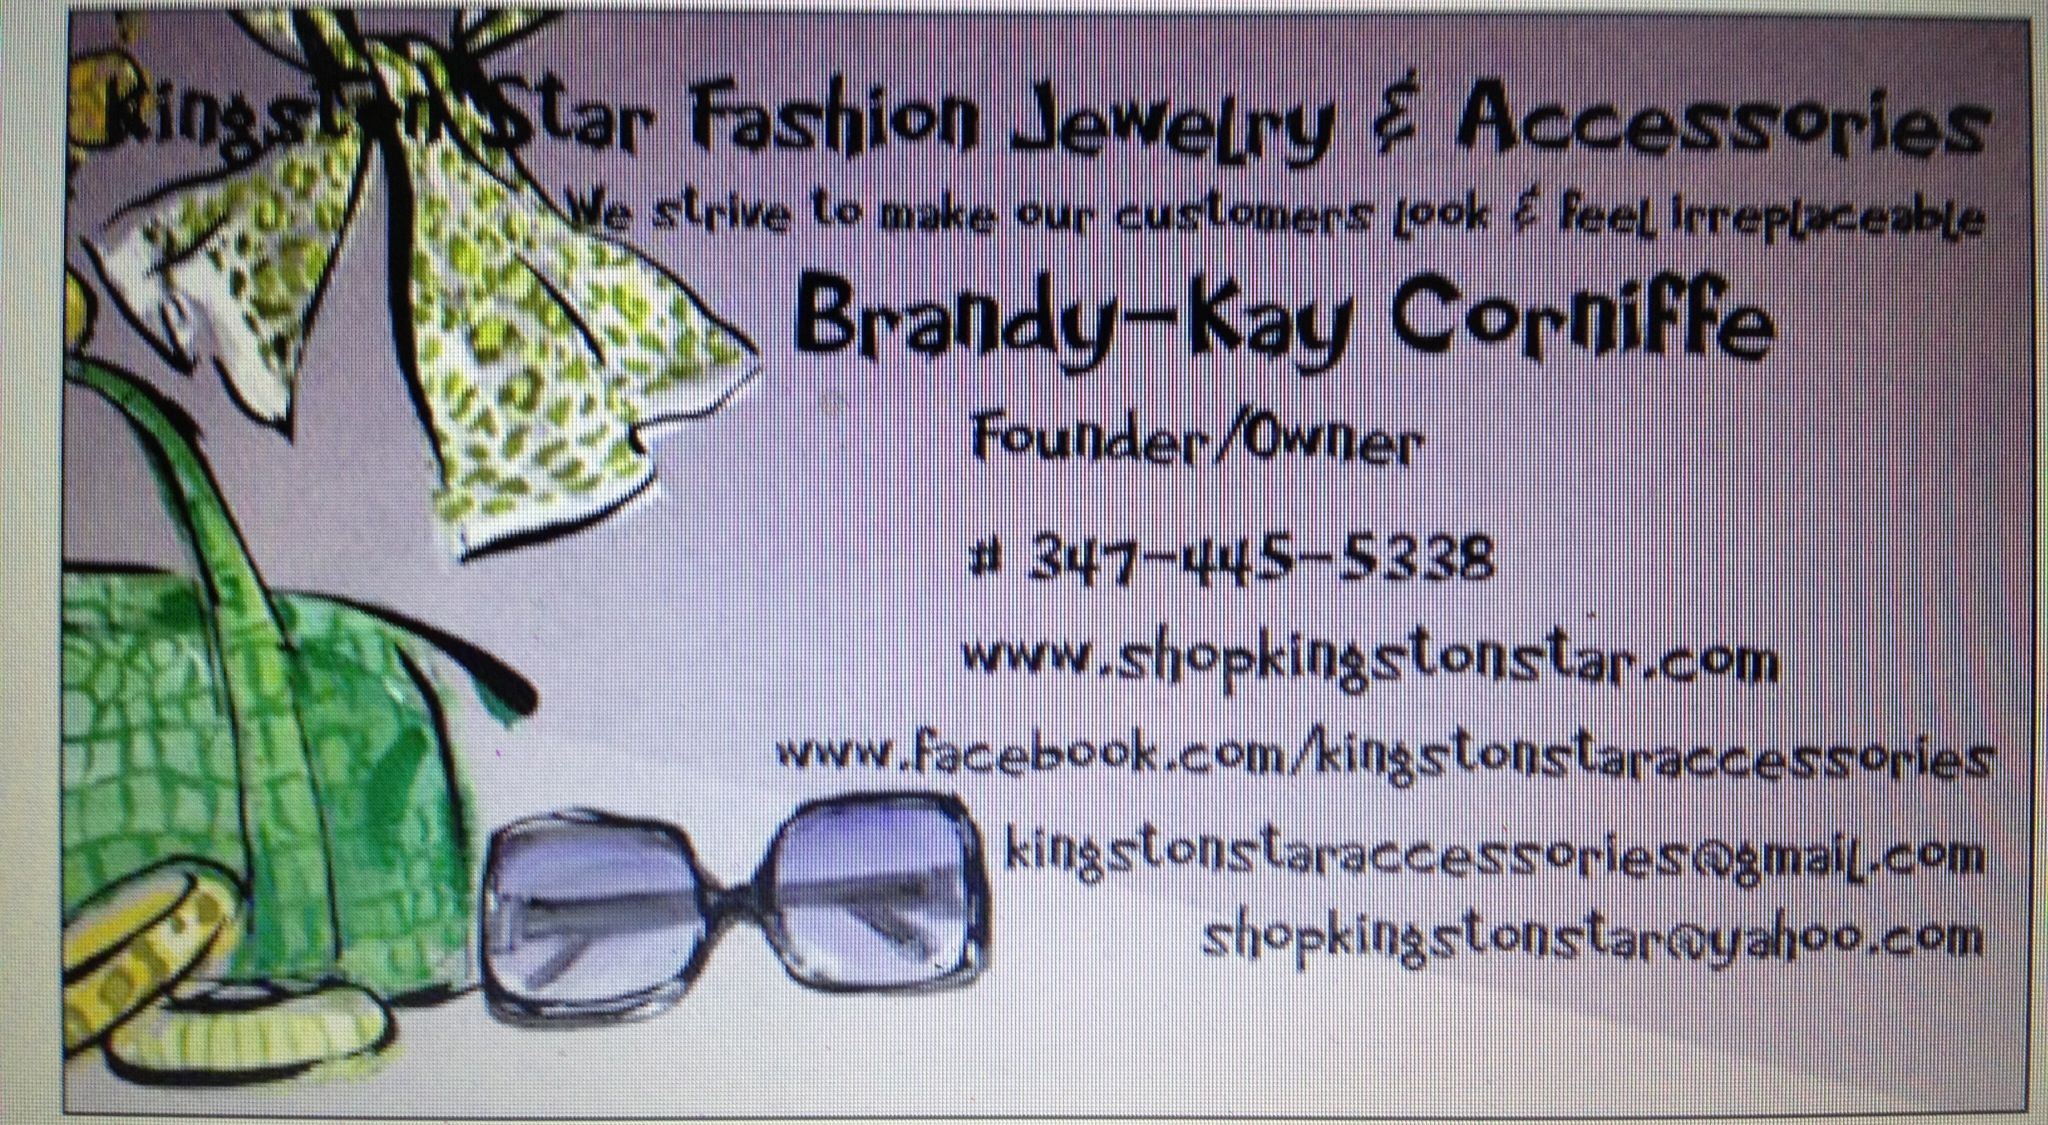 Kingston star business card | Fashion jewelry & accessories ...